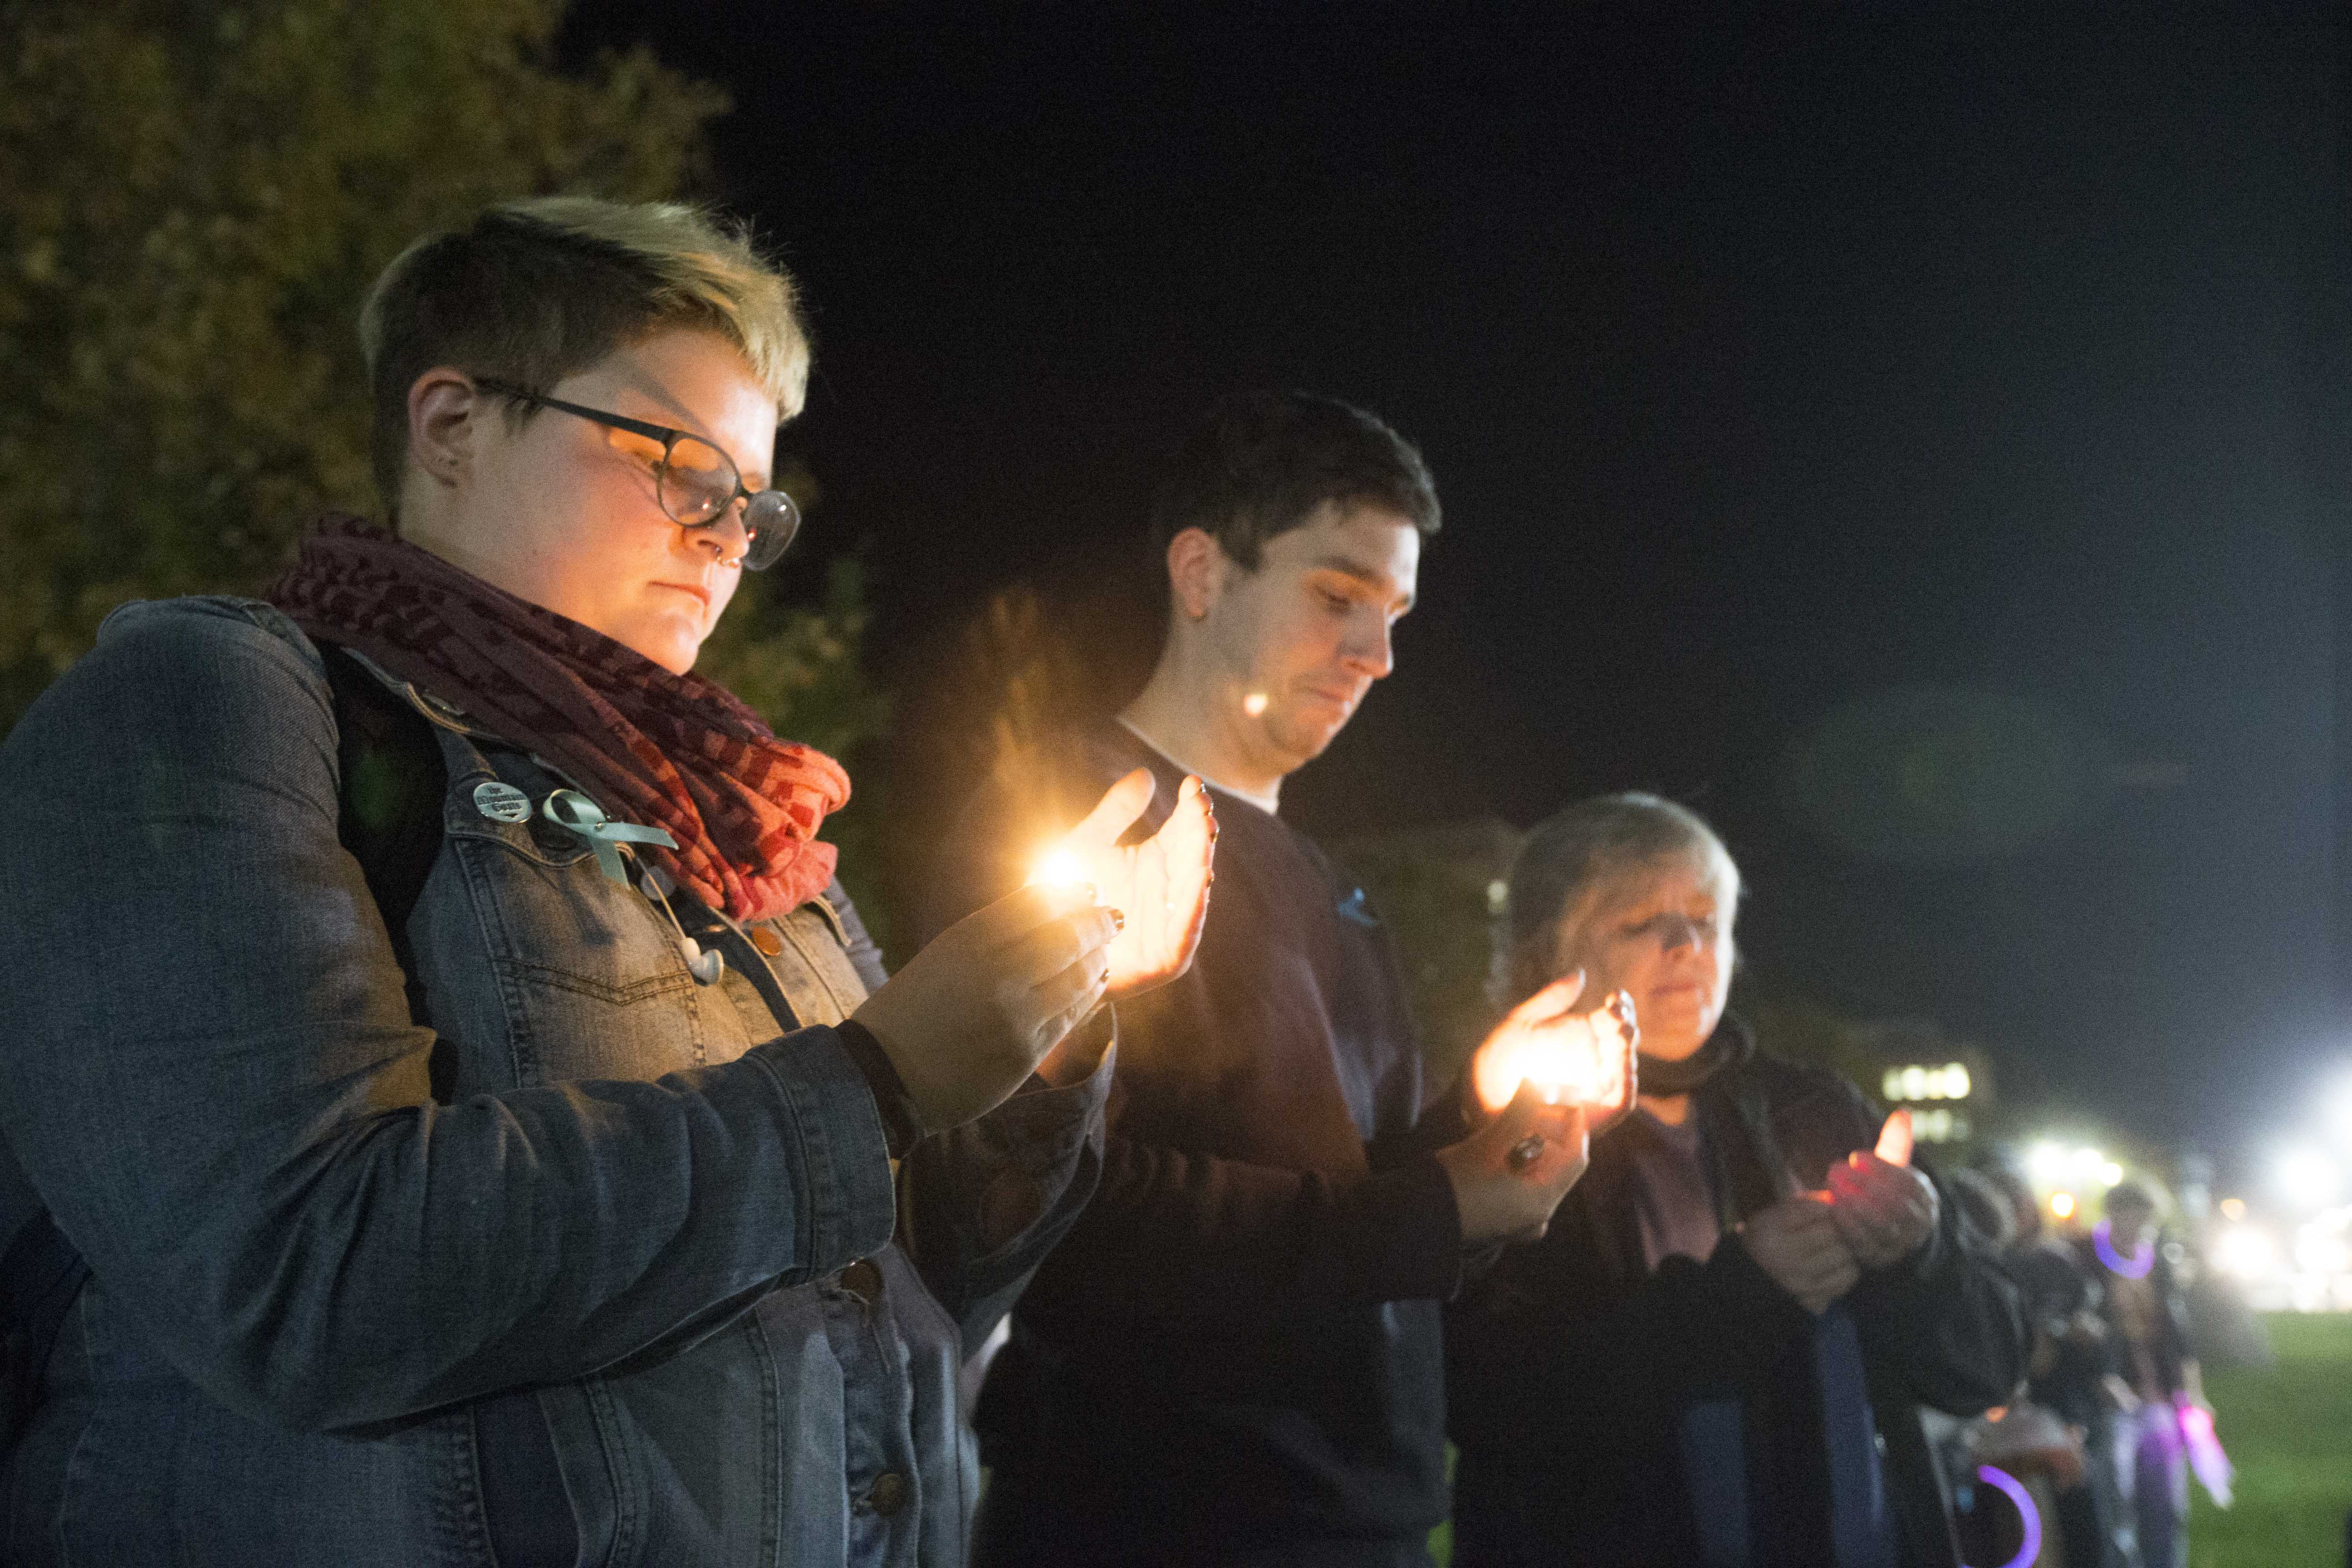 From left: UI senior Ellen Kuehnle and Women's Resource and Action Center employees Cody Howell and Laurie Haag hold candles during the UI Sister Vigil for Survivors of Campus Sexual Assault on the Pentacrest on Tuesday, Oct. 17, 2017. The event included letter writing to Iowa senators and the signing of thank you state of Iowa flags to senators fighting the withdrawal of Title IX protections for survivors of sexual assault. (Lily Smith/The Daily Iowan)